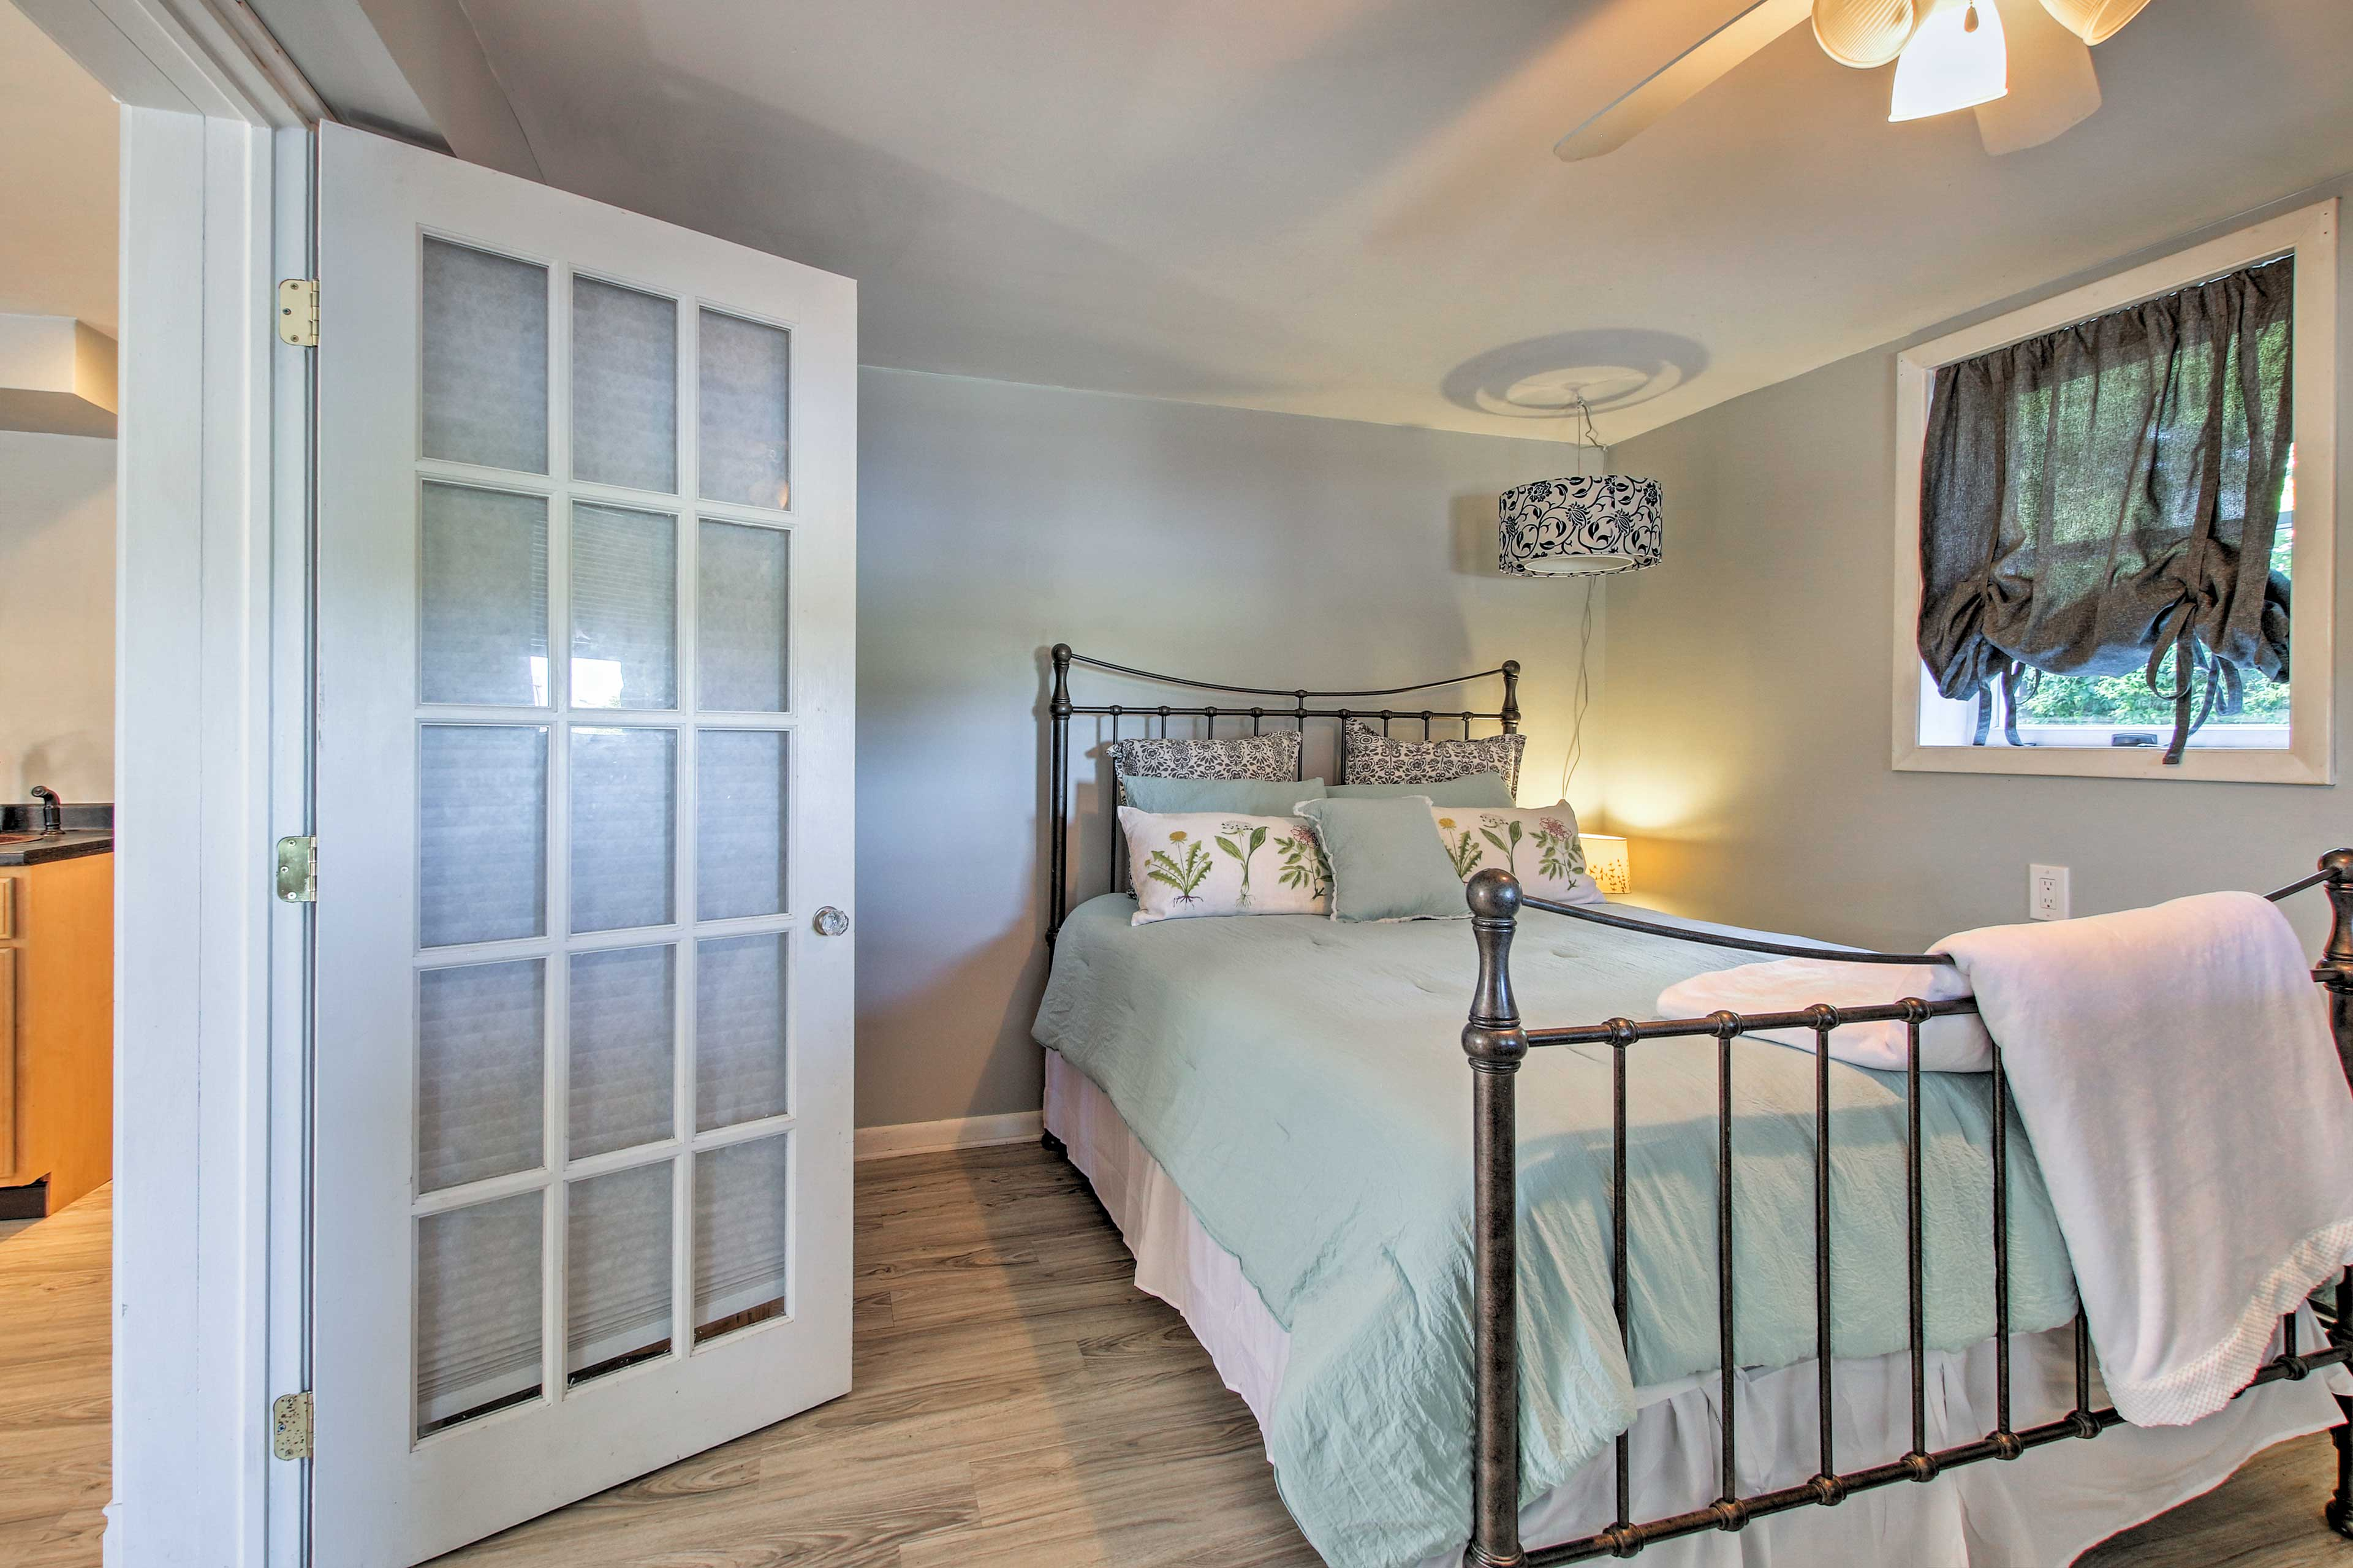 The lower level hosts a bedroom with a full bed.